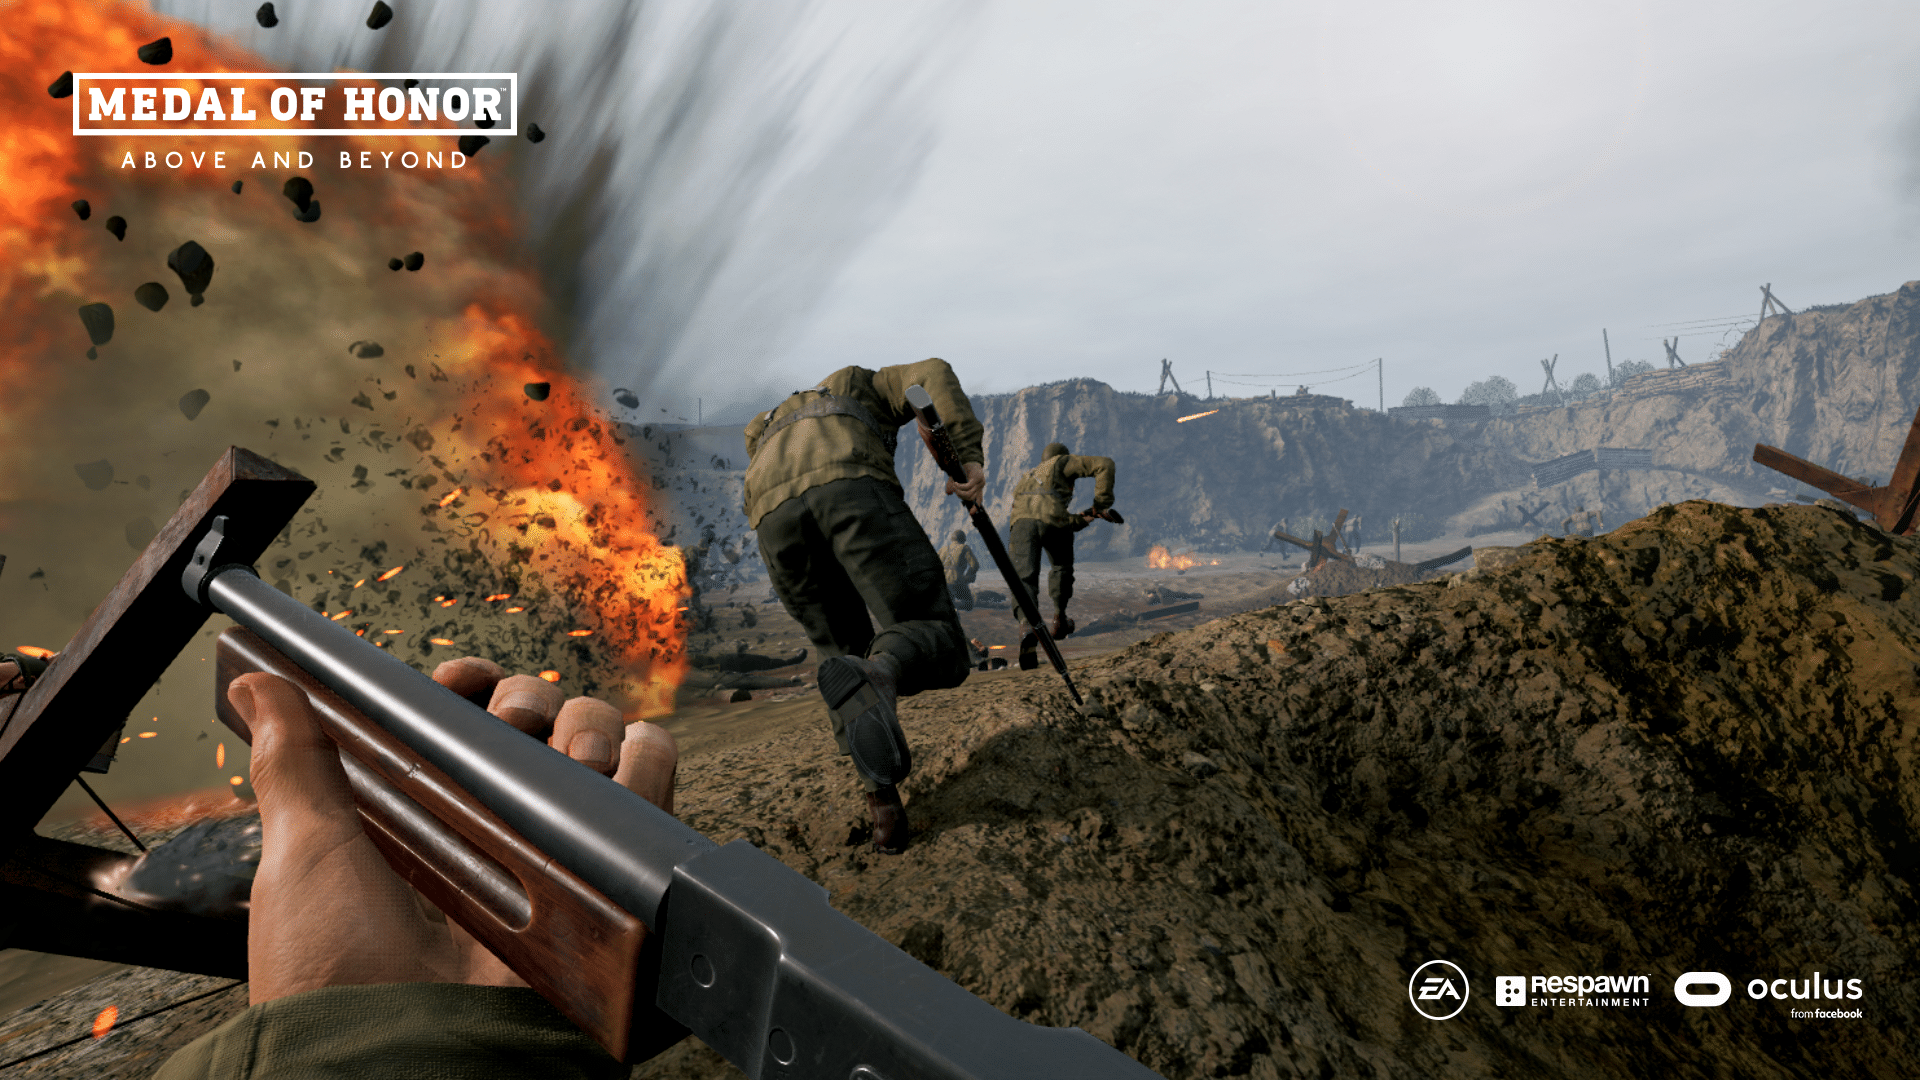 medal of honor vr steam above and beyond vr explosion